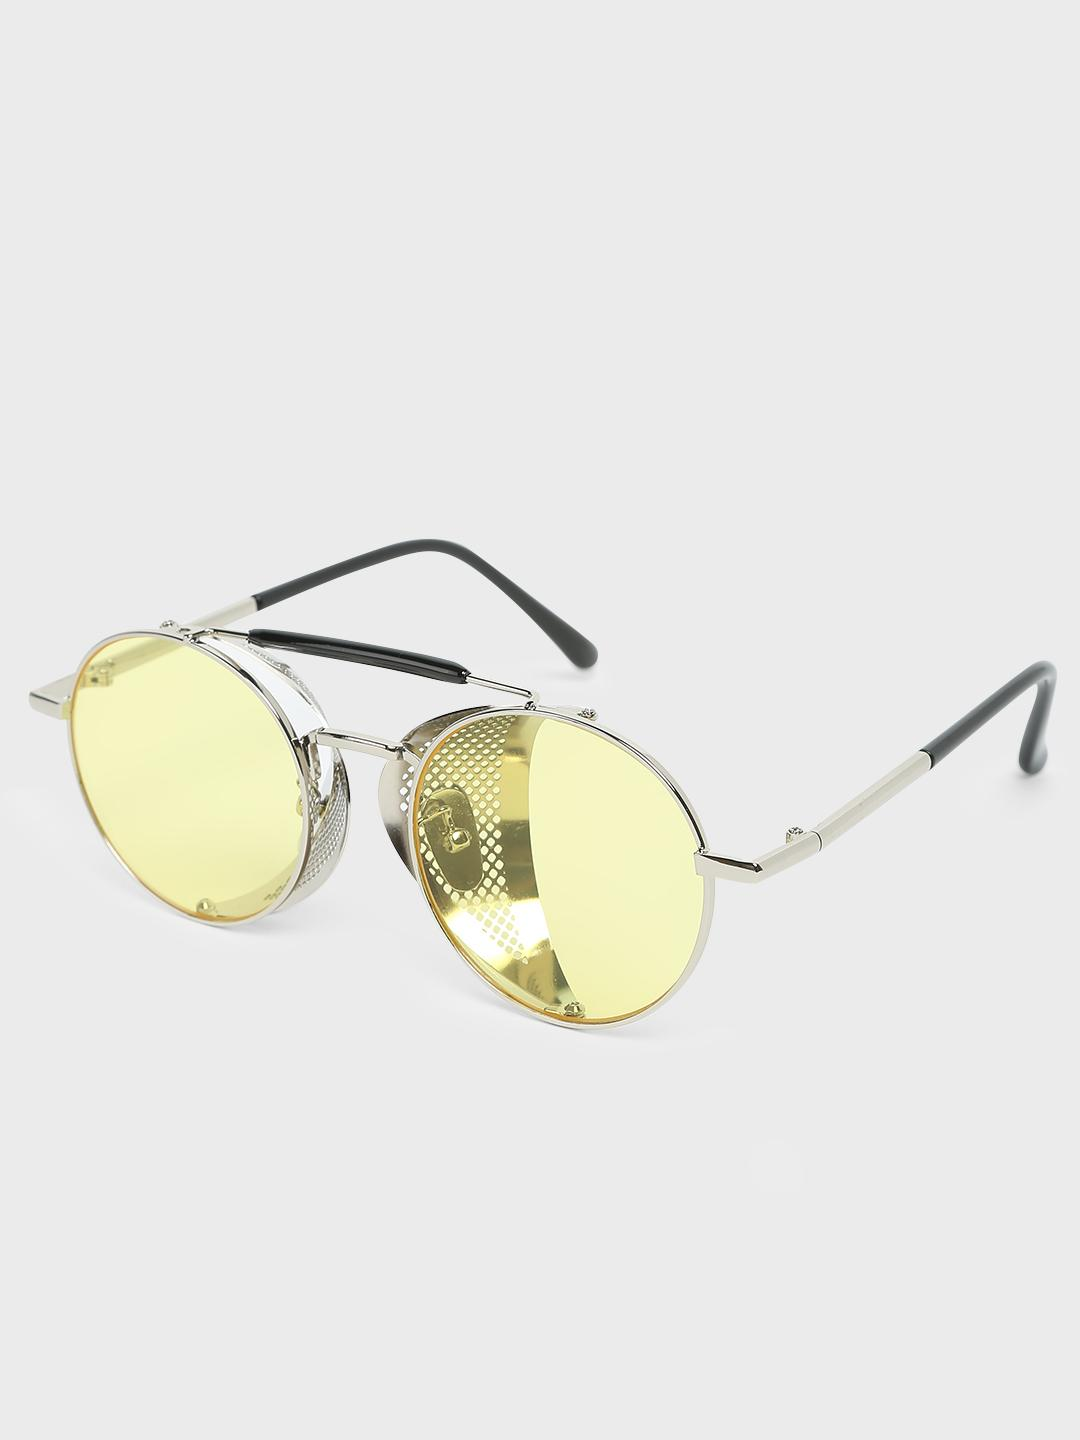 Fuzoku Golden/Yellow Golden/Yellow Metal Round Frame Sunglasses 1